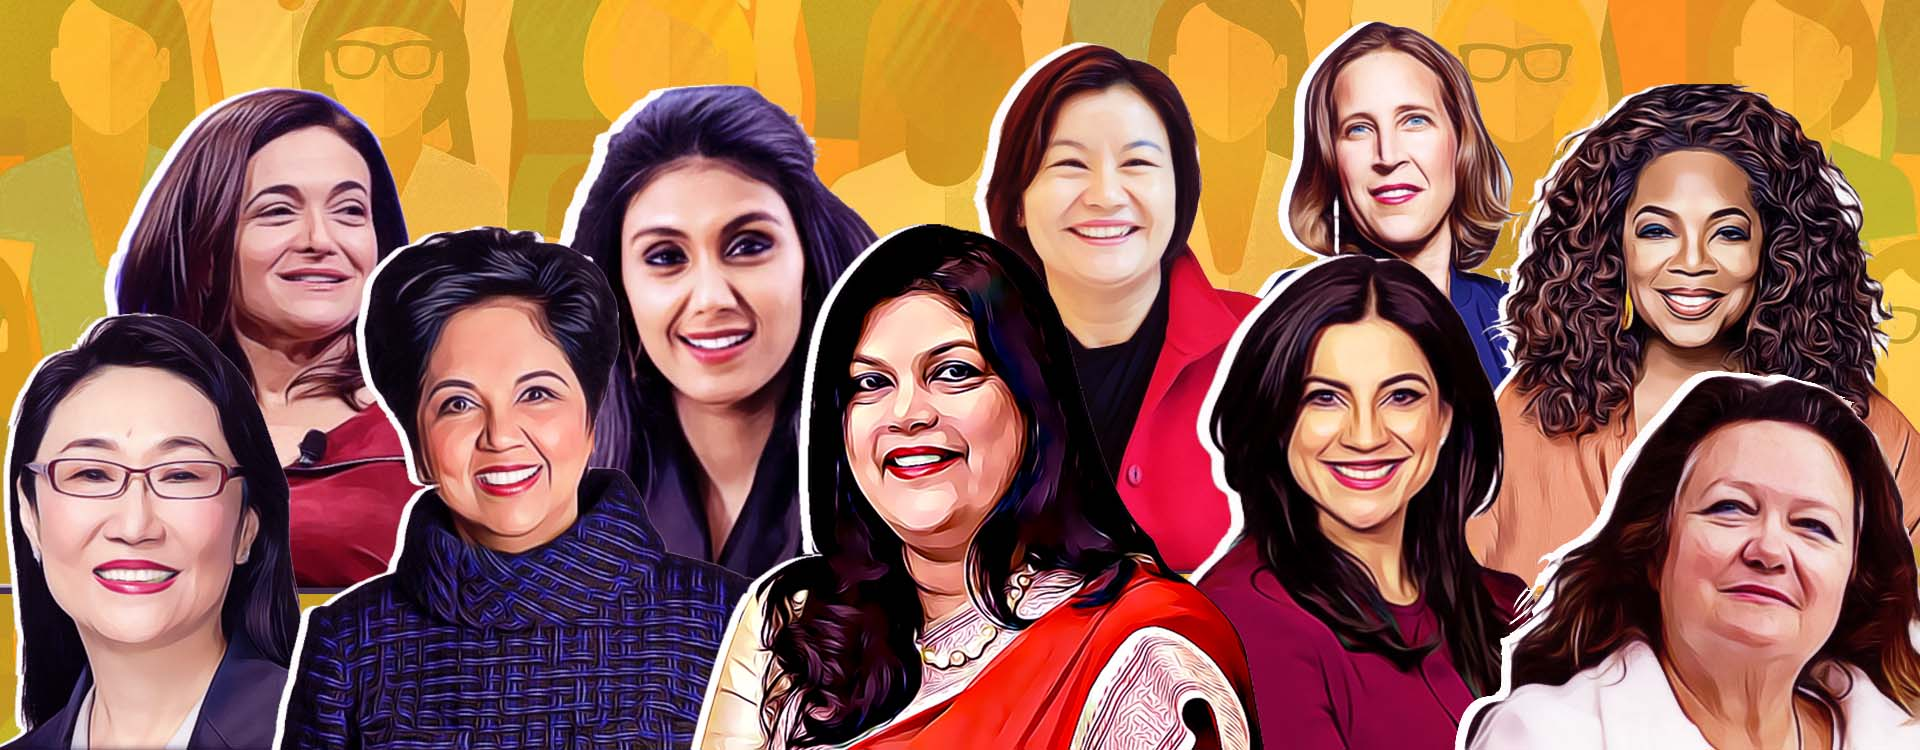 Top Women Entrepreneurs in the world- find out who they are